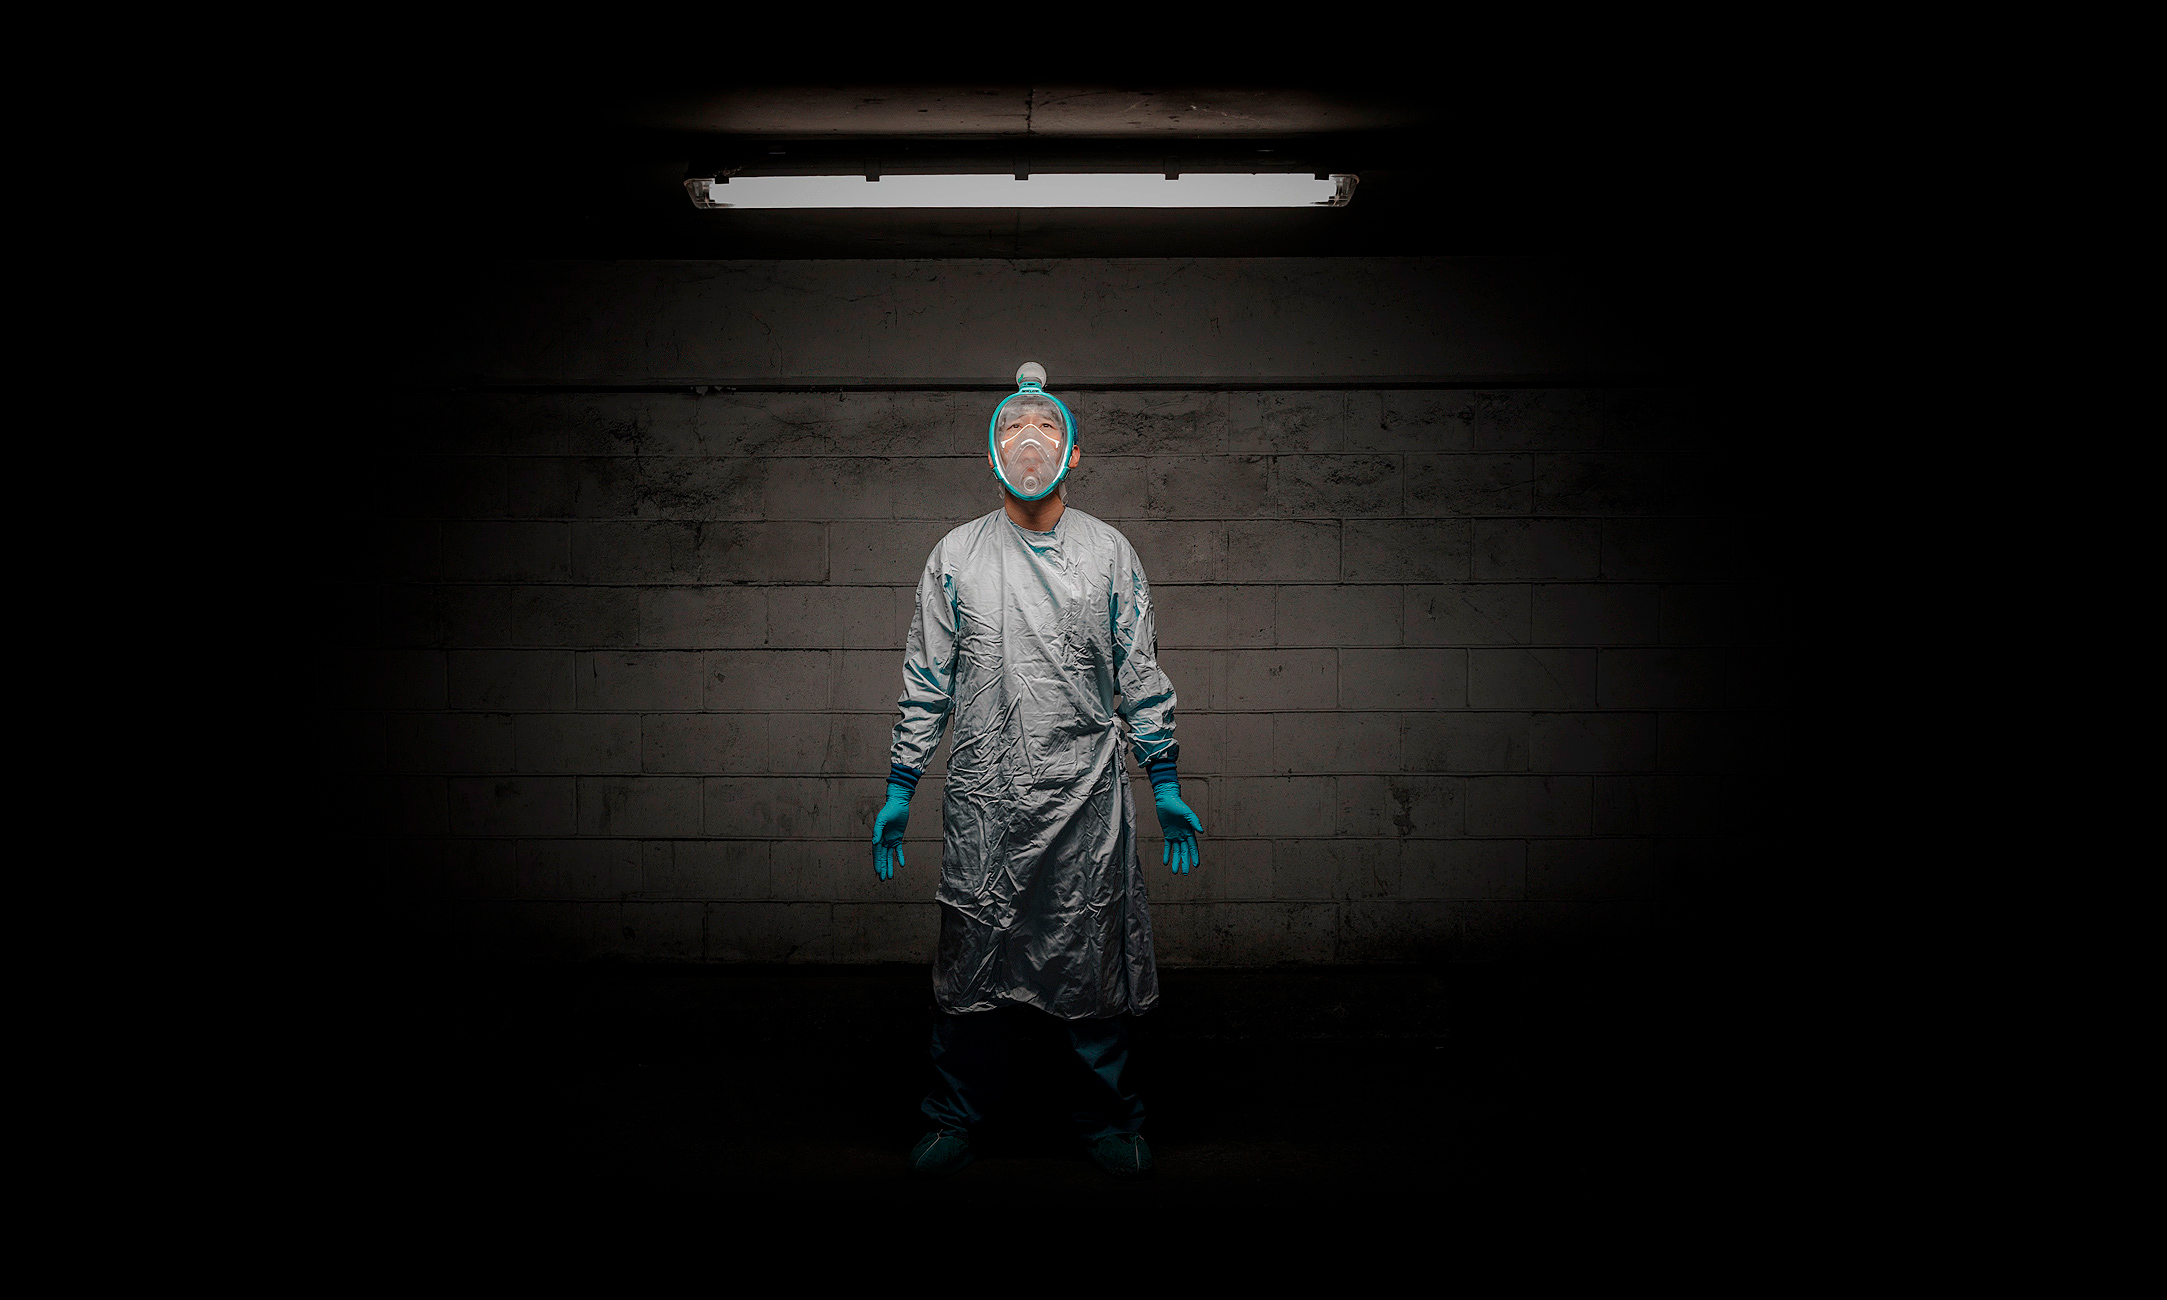 a portrait of a doctor wearing personal protective equipment during the pandemic in toronto